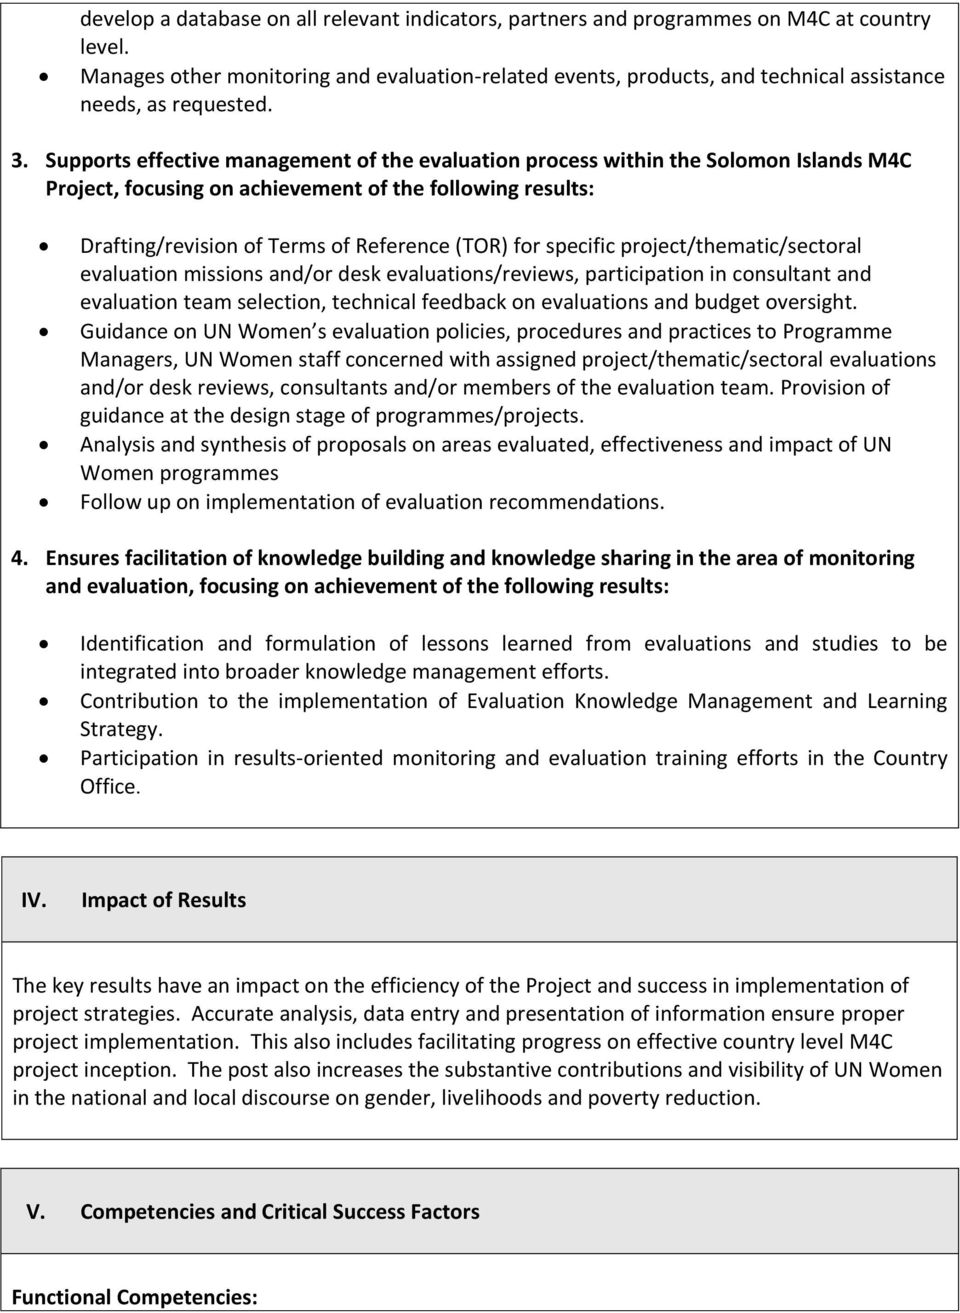 Supports effective management of the evaluation process within the Solomon Islands M4C Project, focusing on achievement of the following results: Drafting/revision of Terms of Reference (TOR) for